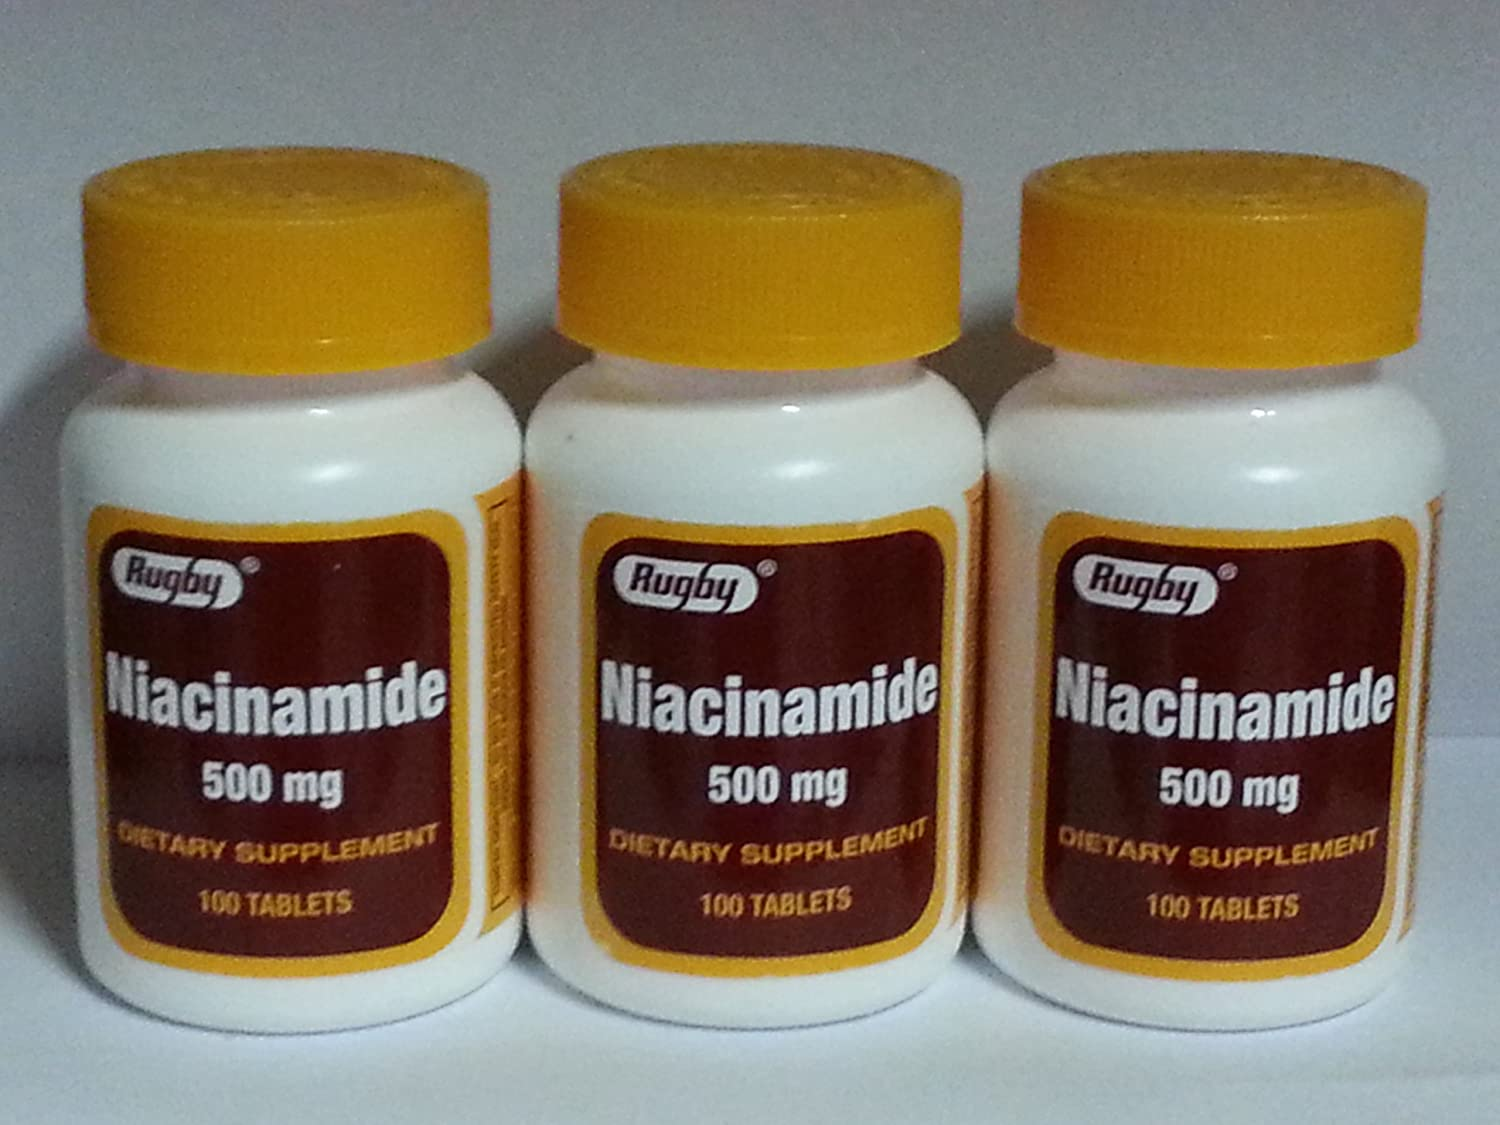 Rugby Niacinamide 500mg Dealing full price reduction Tablets - 3 100ct Max 86% OFF Pack